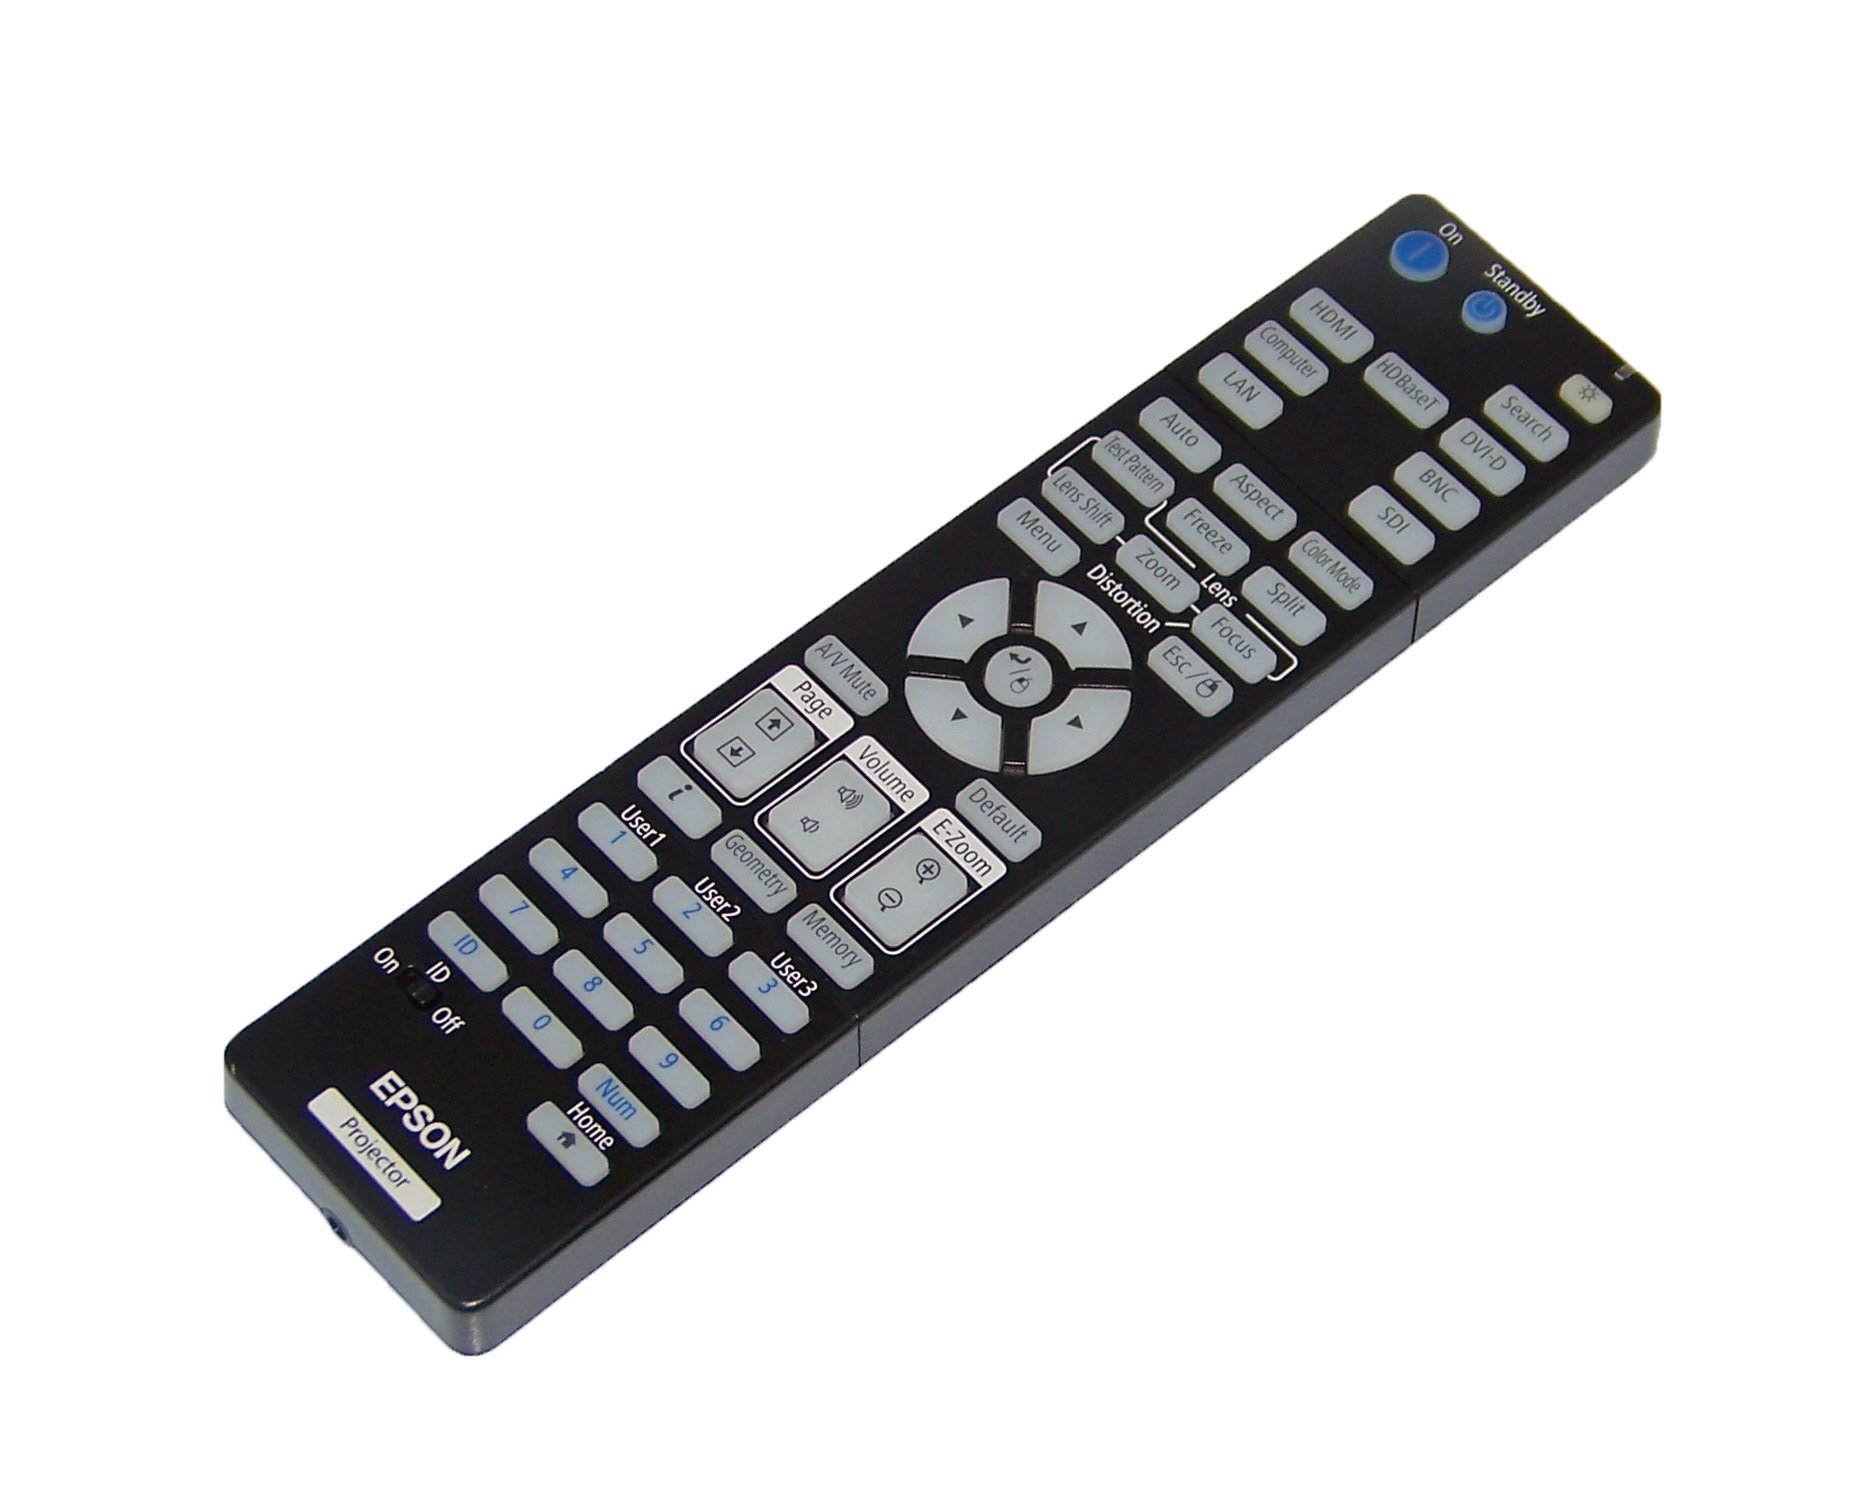 OEM Epson Projector Remote Control For Epson Pro G7805, G7400U, G7100, G7200W by Epson